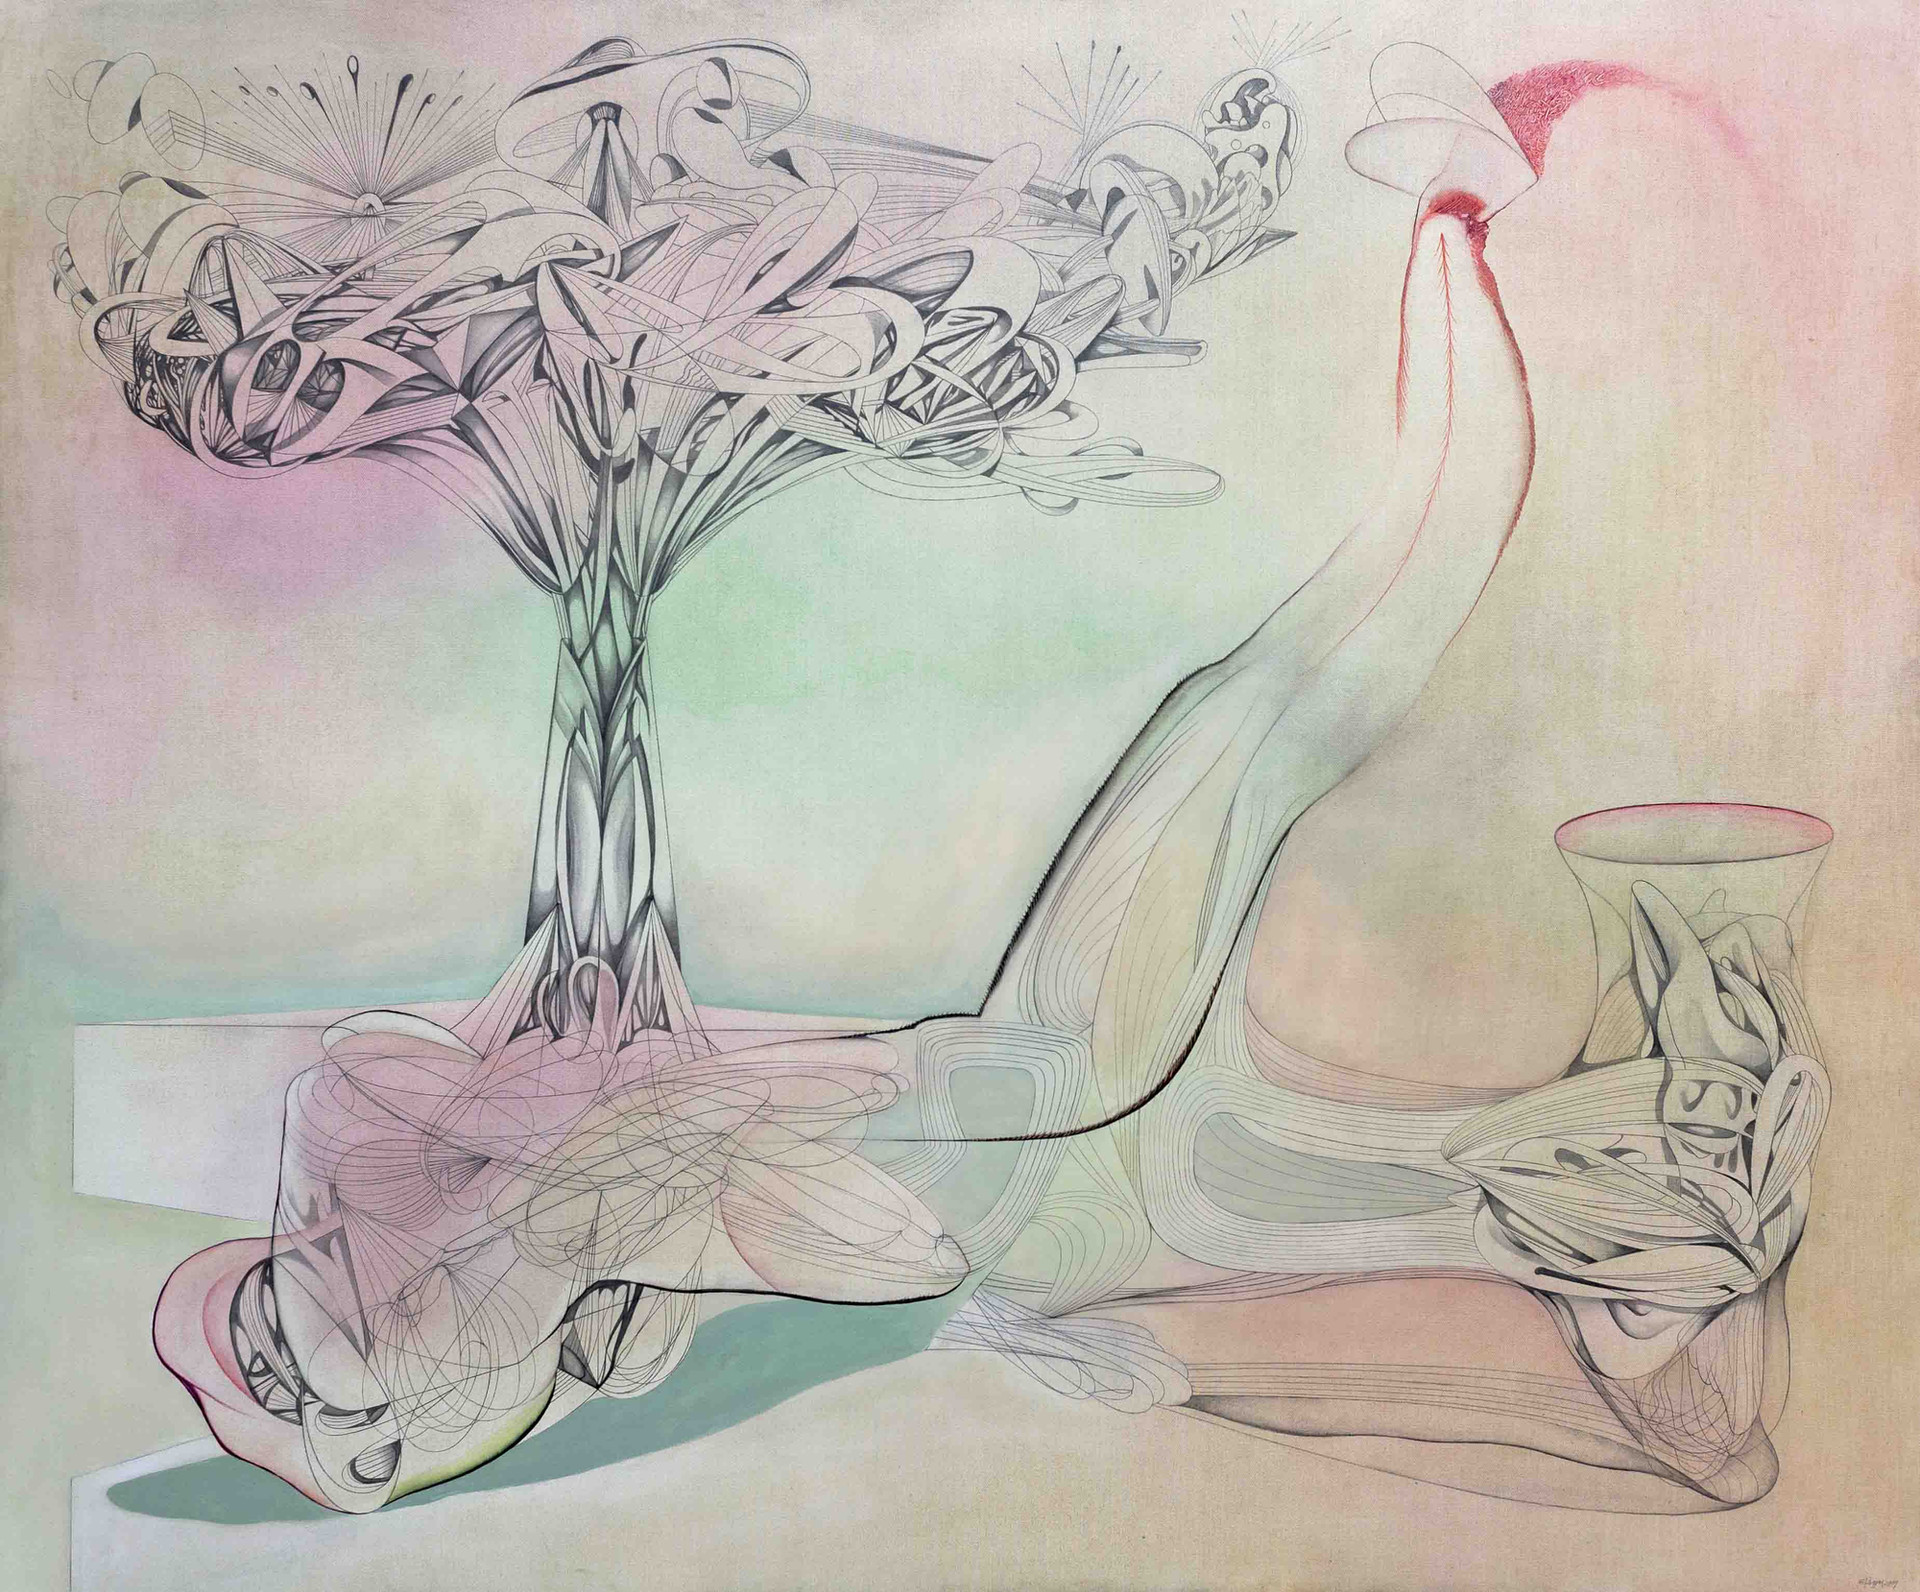 I talk to the Wind 2019 180x150cm  Graphite pencil, wax oil crayon, crayon and oil on canvas